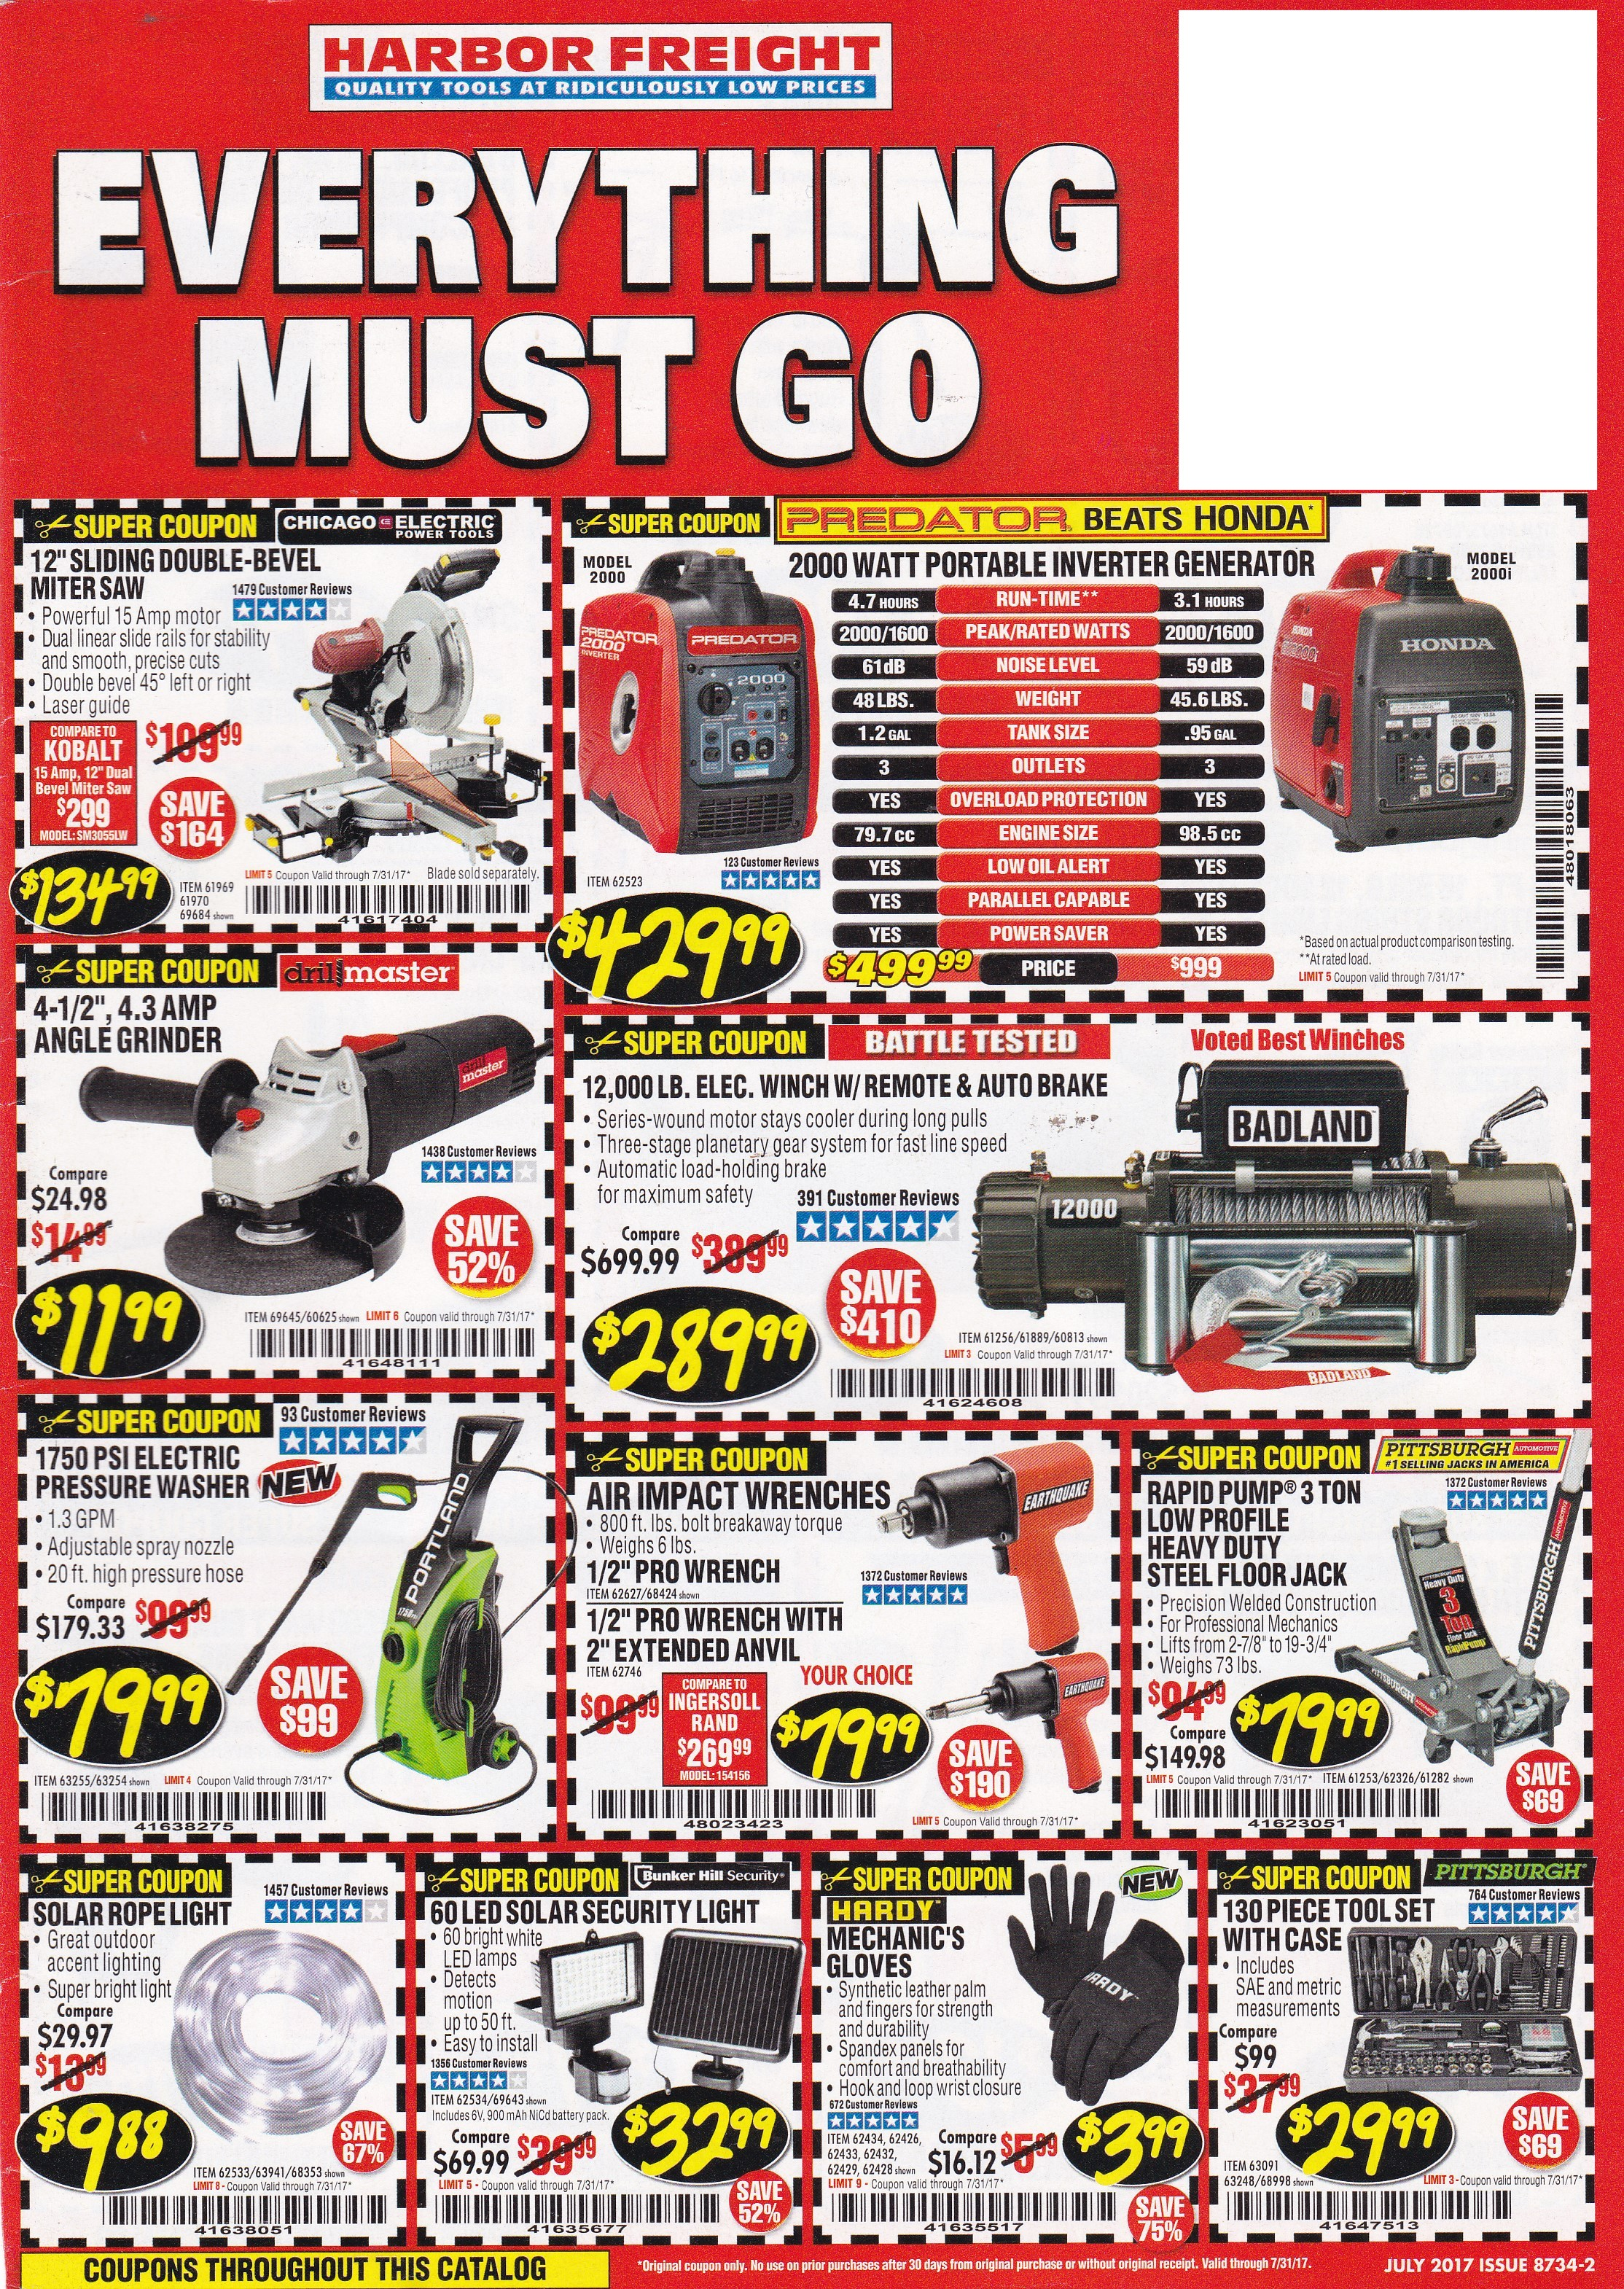 This is an image of Sizzling Harbor Freight Super Coupon Printable